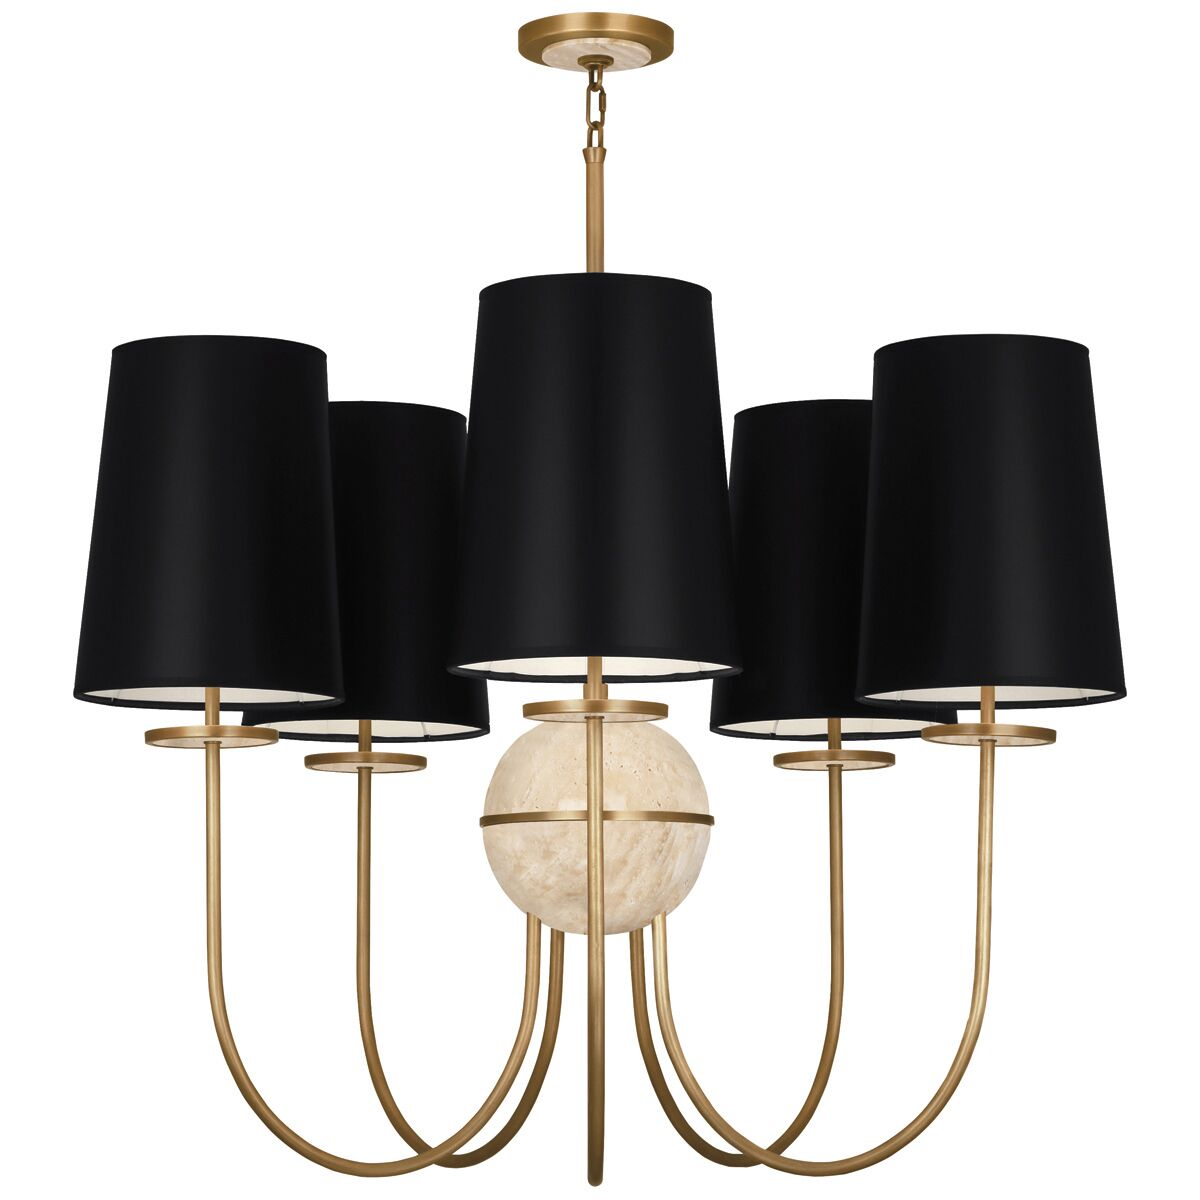 Fineas 5-Light Shaded Chandelier Finish: Aged Brass/Travertine Stone, Shade Color: Black Opaque